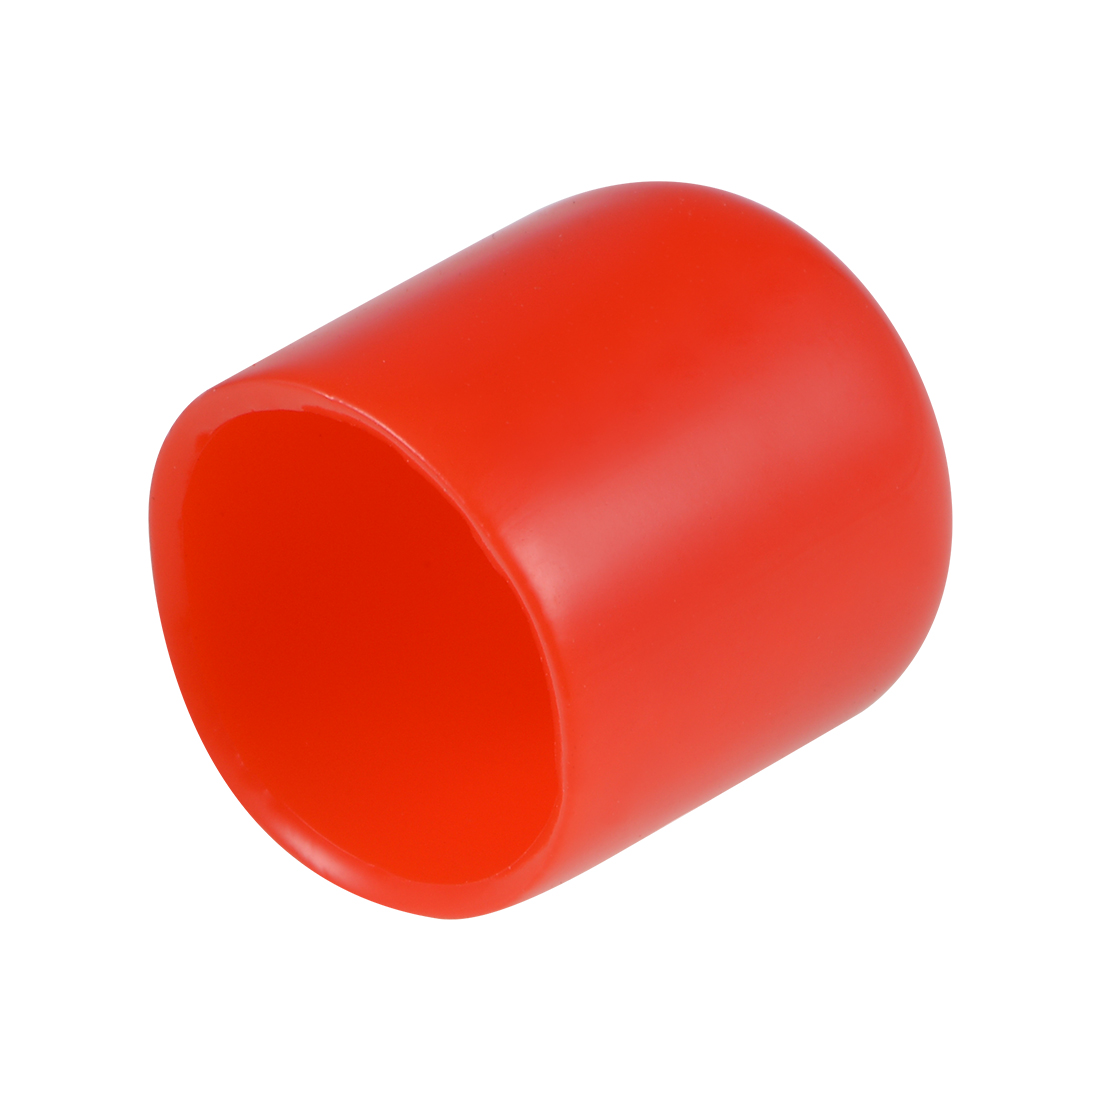 Screw Thread Protector, 17mm ID Round End Cap Cover Red Tube Caps 20pcs